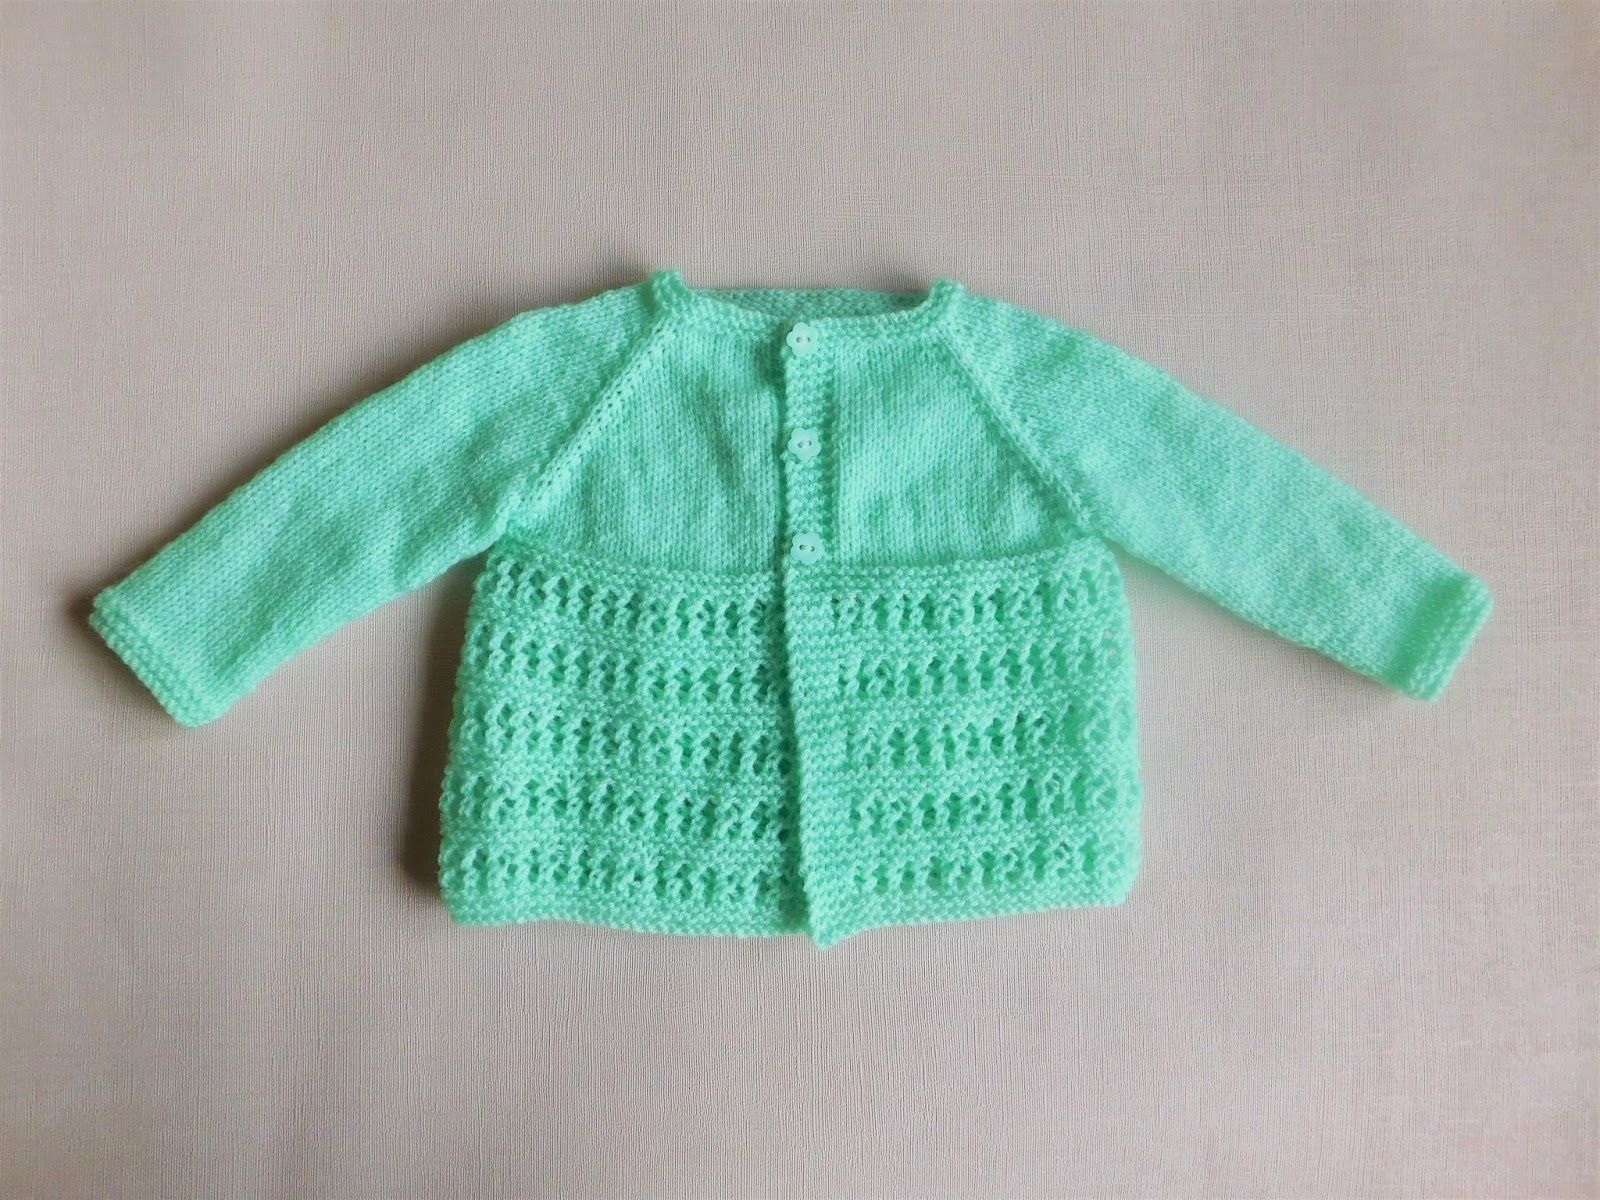 Free Knitting Patterns Baby Cardigans Marianas Lazy Daisy Knitting Patterns. Free Knitting Patterns Baby Cardigans Pdf Knitting Pattern Frilled Edge V...  #KnittingPattern